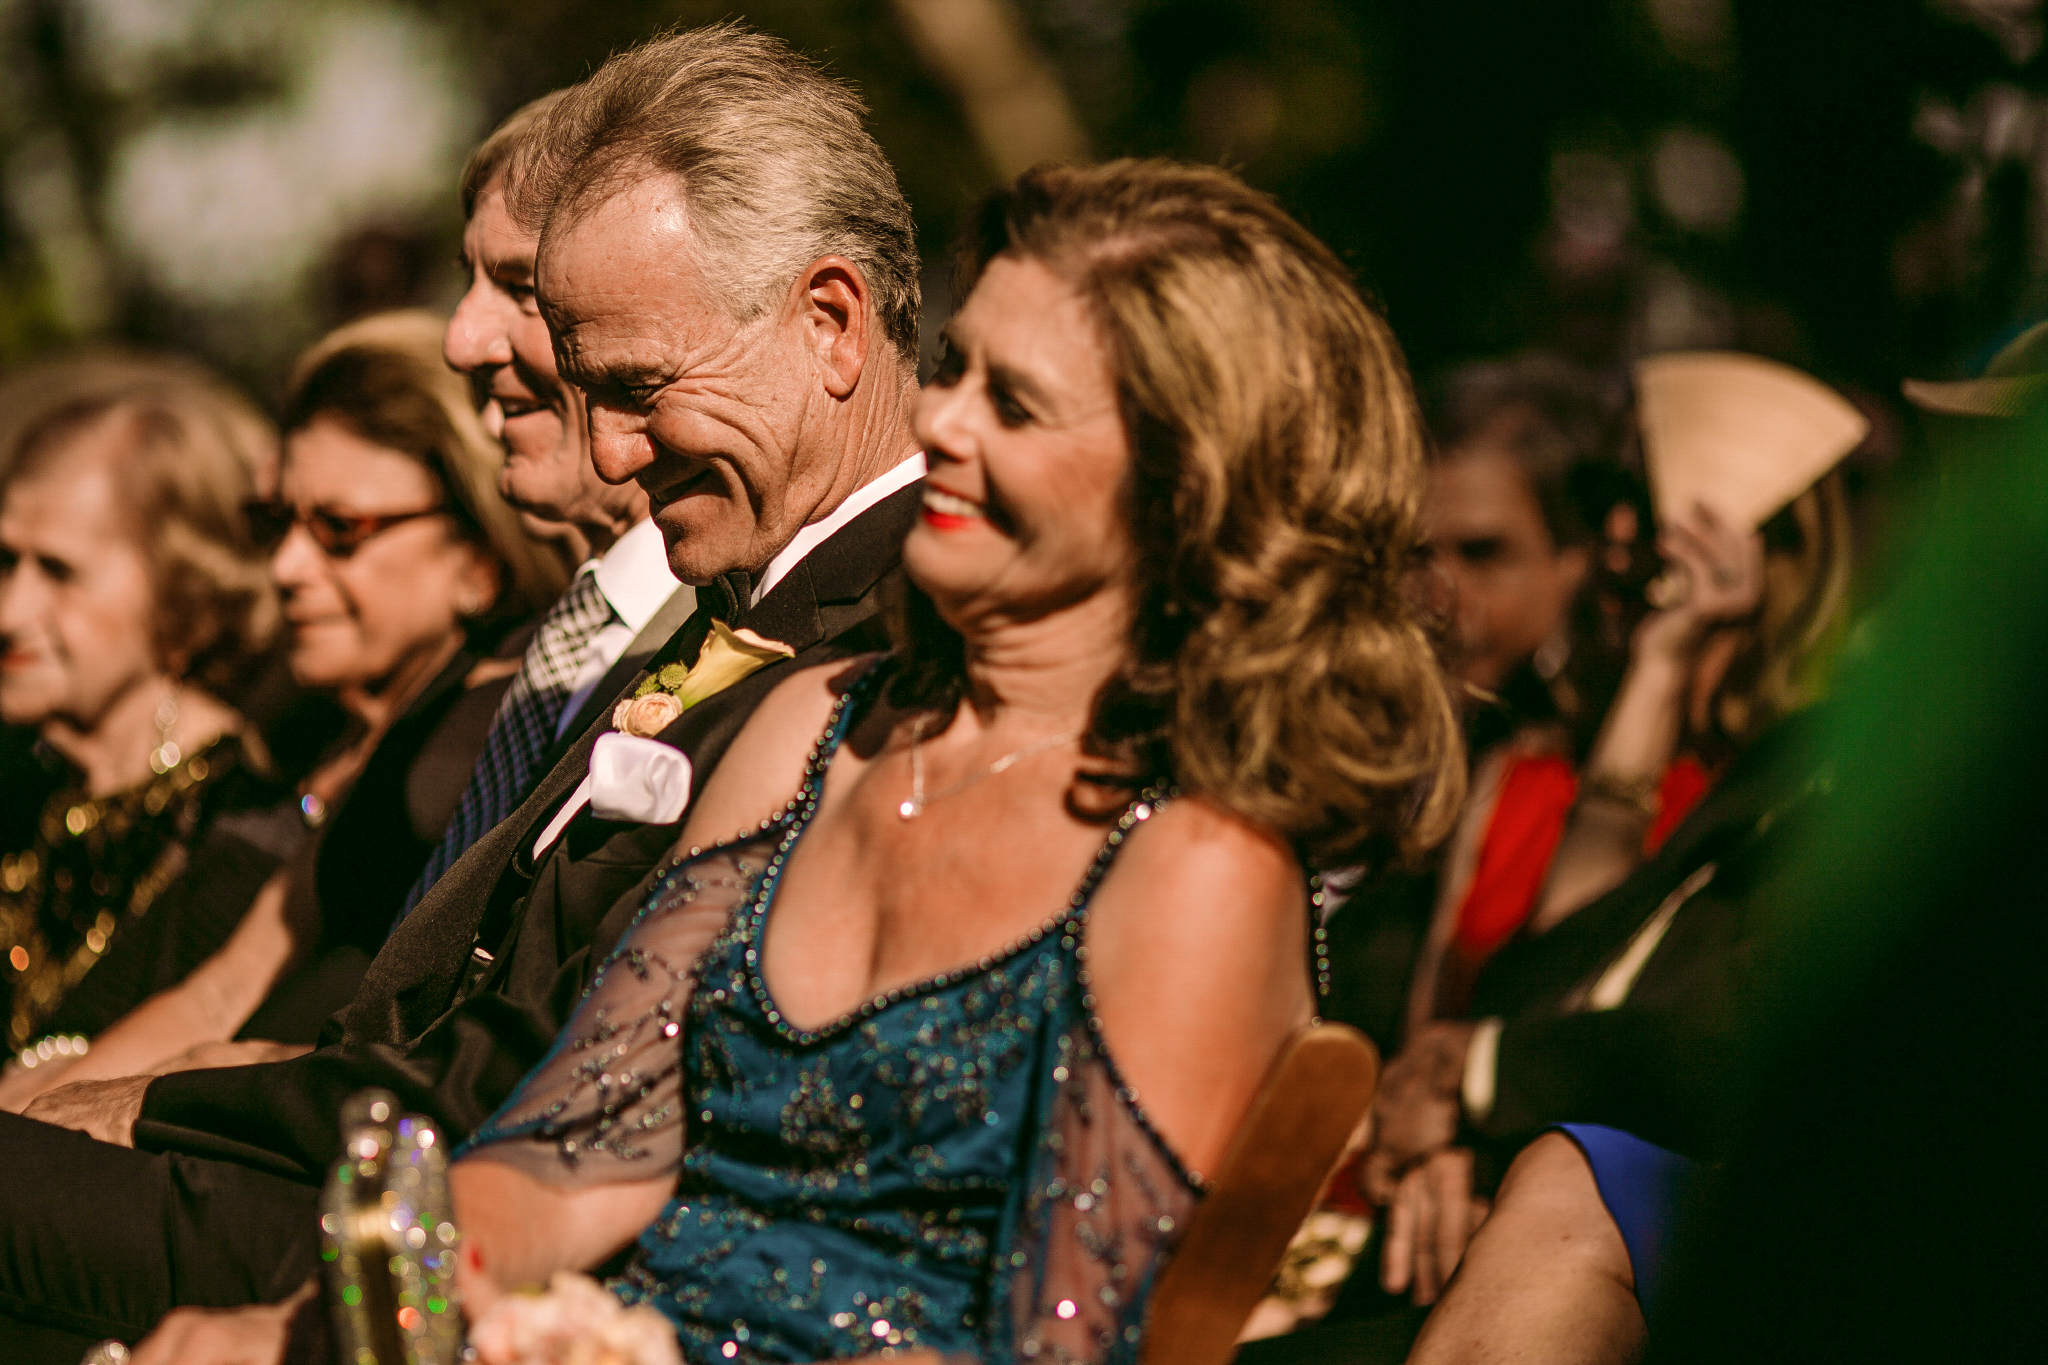 san diego wedding   photographer | old people in crowd laughing while sitting down